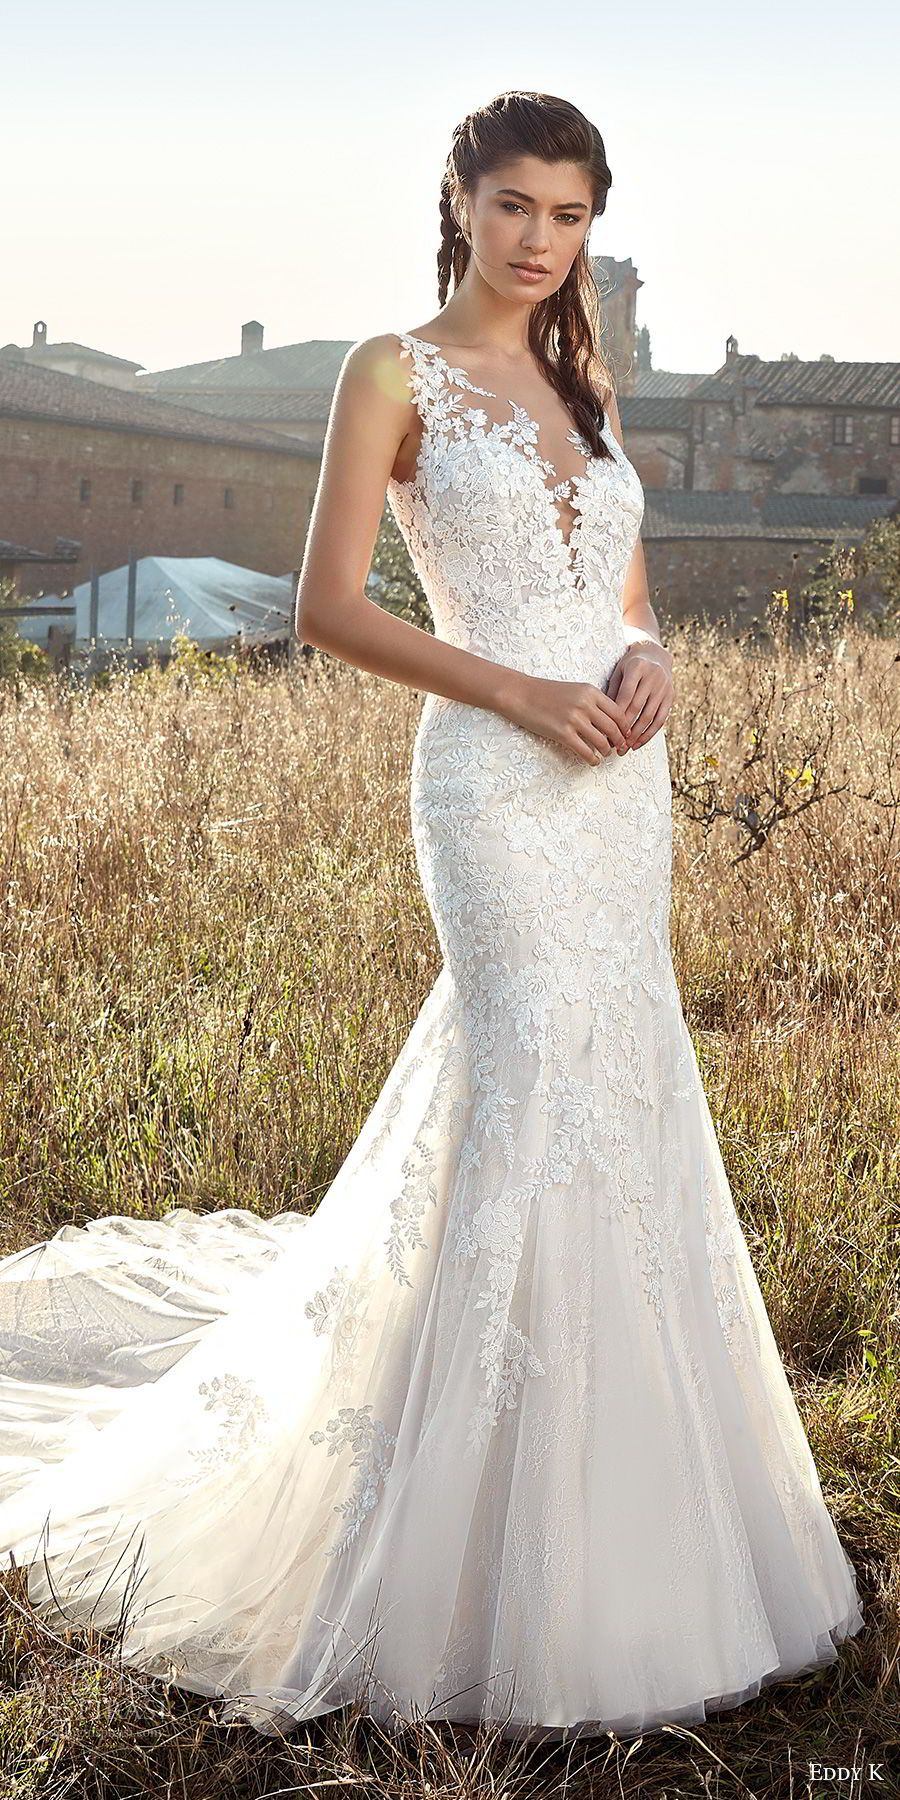 95e613f6dc9 eddy k 2019 ek sleeveless deep plunging sweetheart neckline heavily  embellished bodice elegant mermaid wedding dress chapel train (7) mv --  Eddy K. 2019 ...